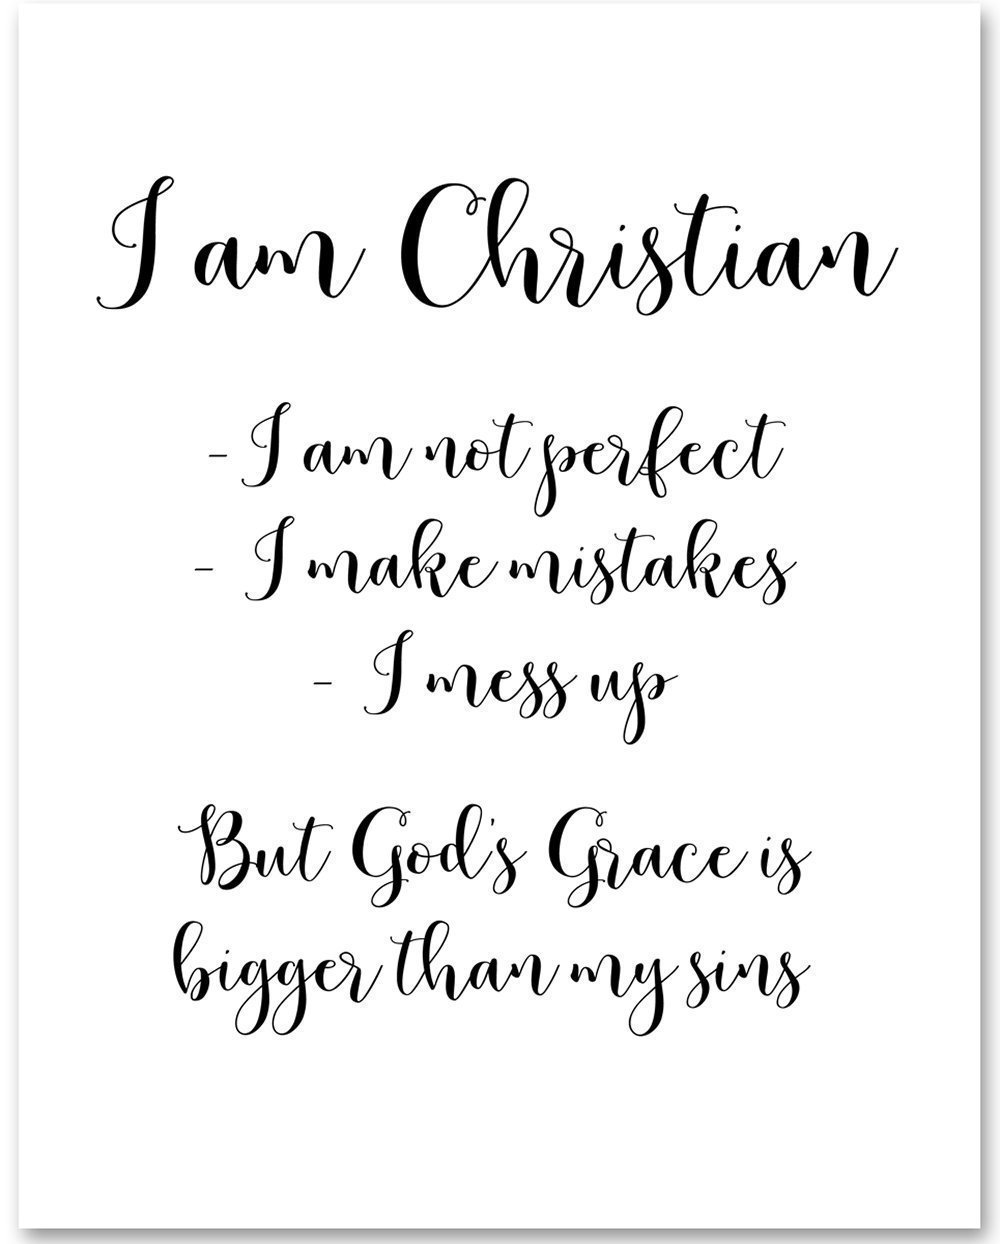 I Am Christian - 11x14 Unframed Typography Art Print - Great Inspirational Gift by Personalized Signs by Lone Star Art